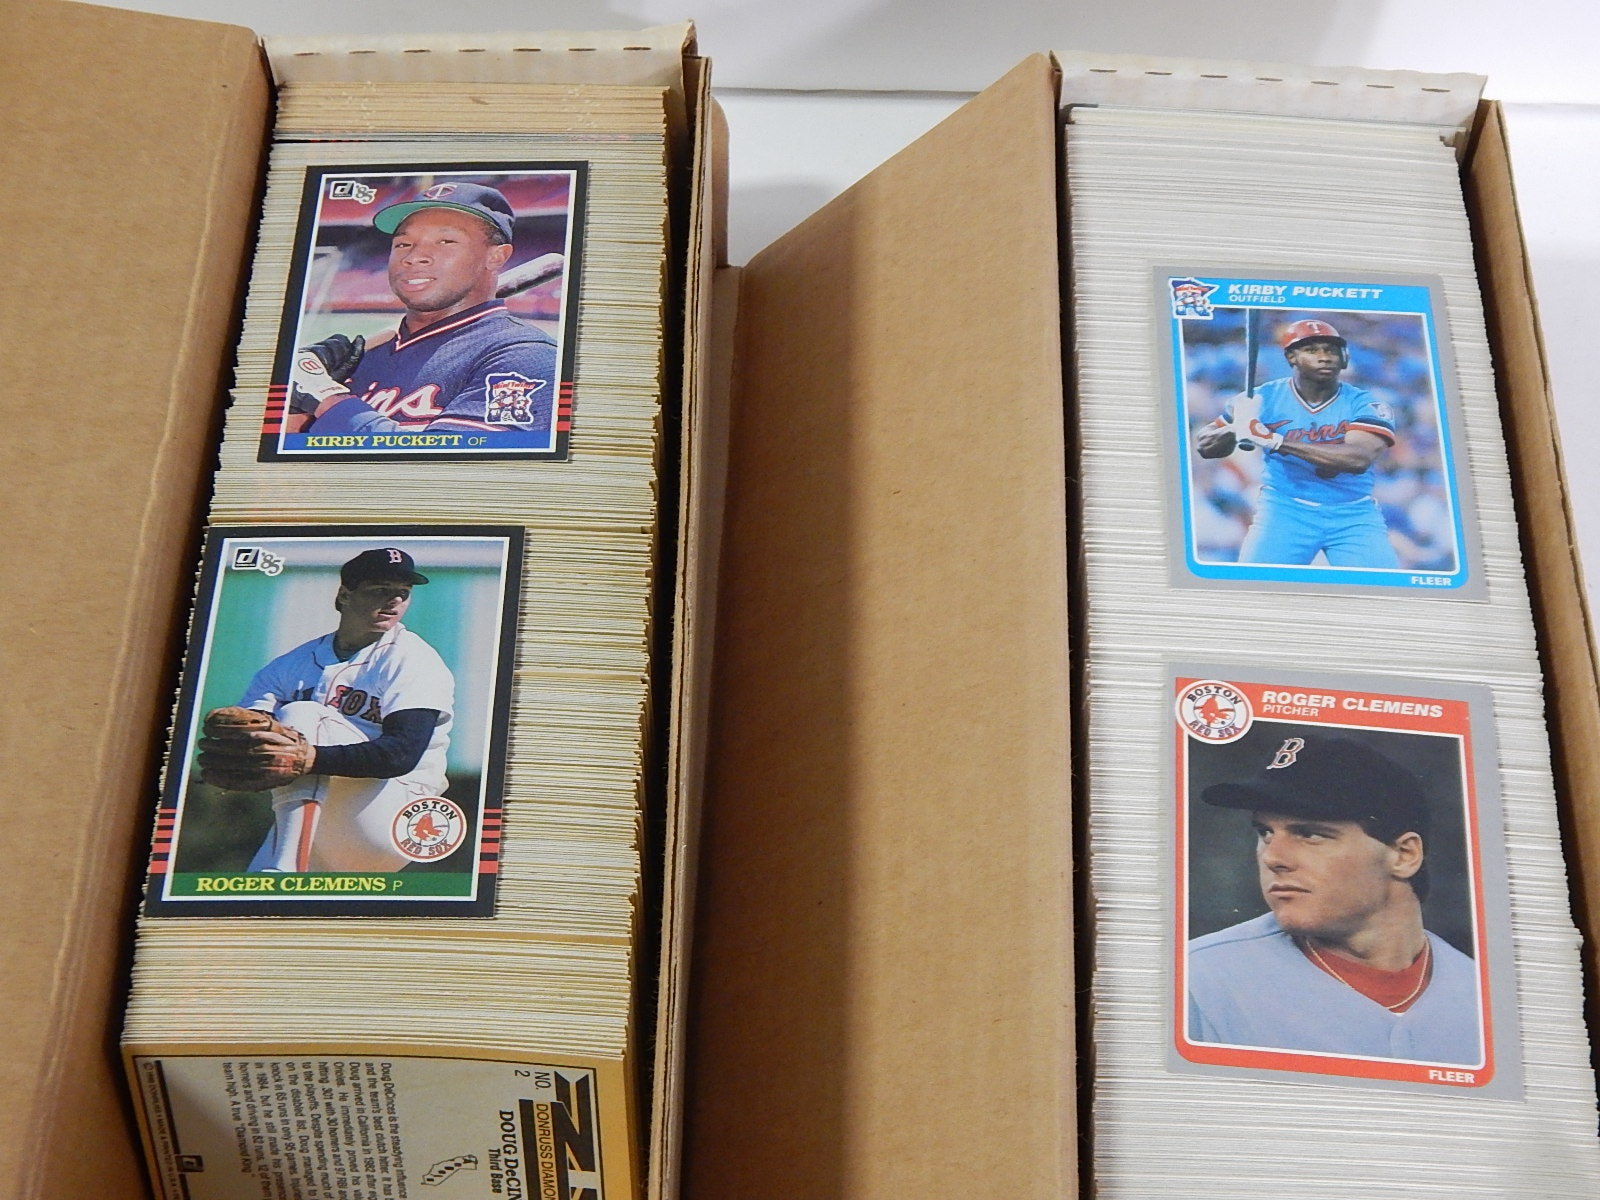 1985 Donruss and Fleer Baseball Card Sets with Clemens and Puckett Rookies